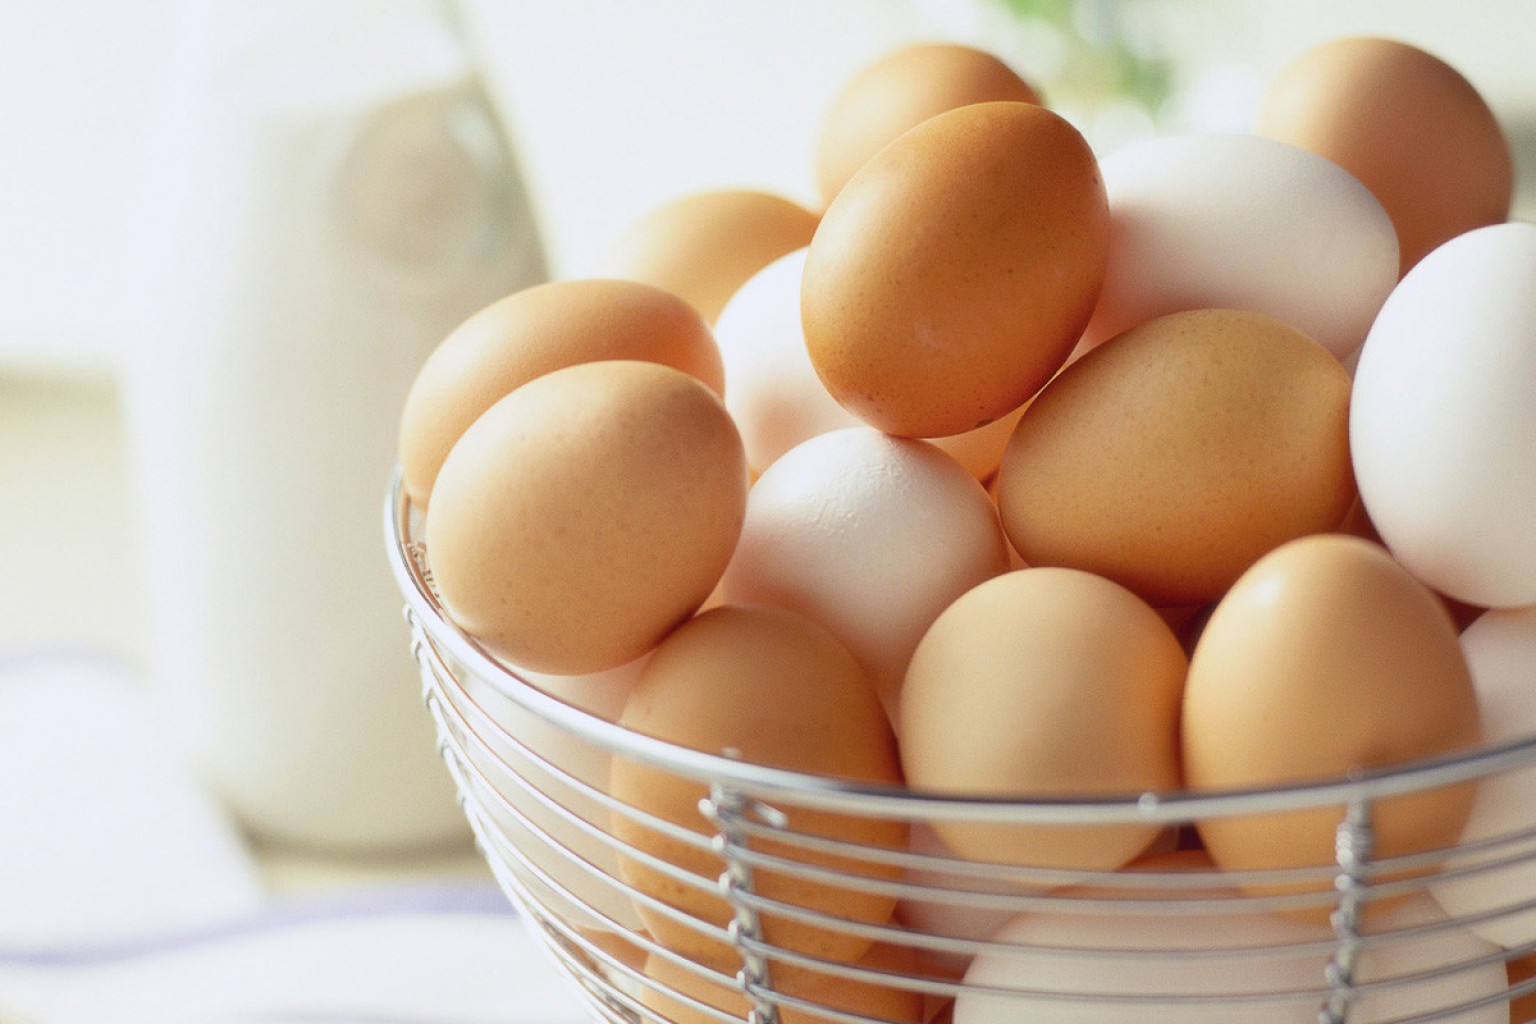 French multinational company Sodexo to source cage-free only eggs by 2025